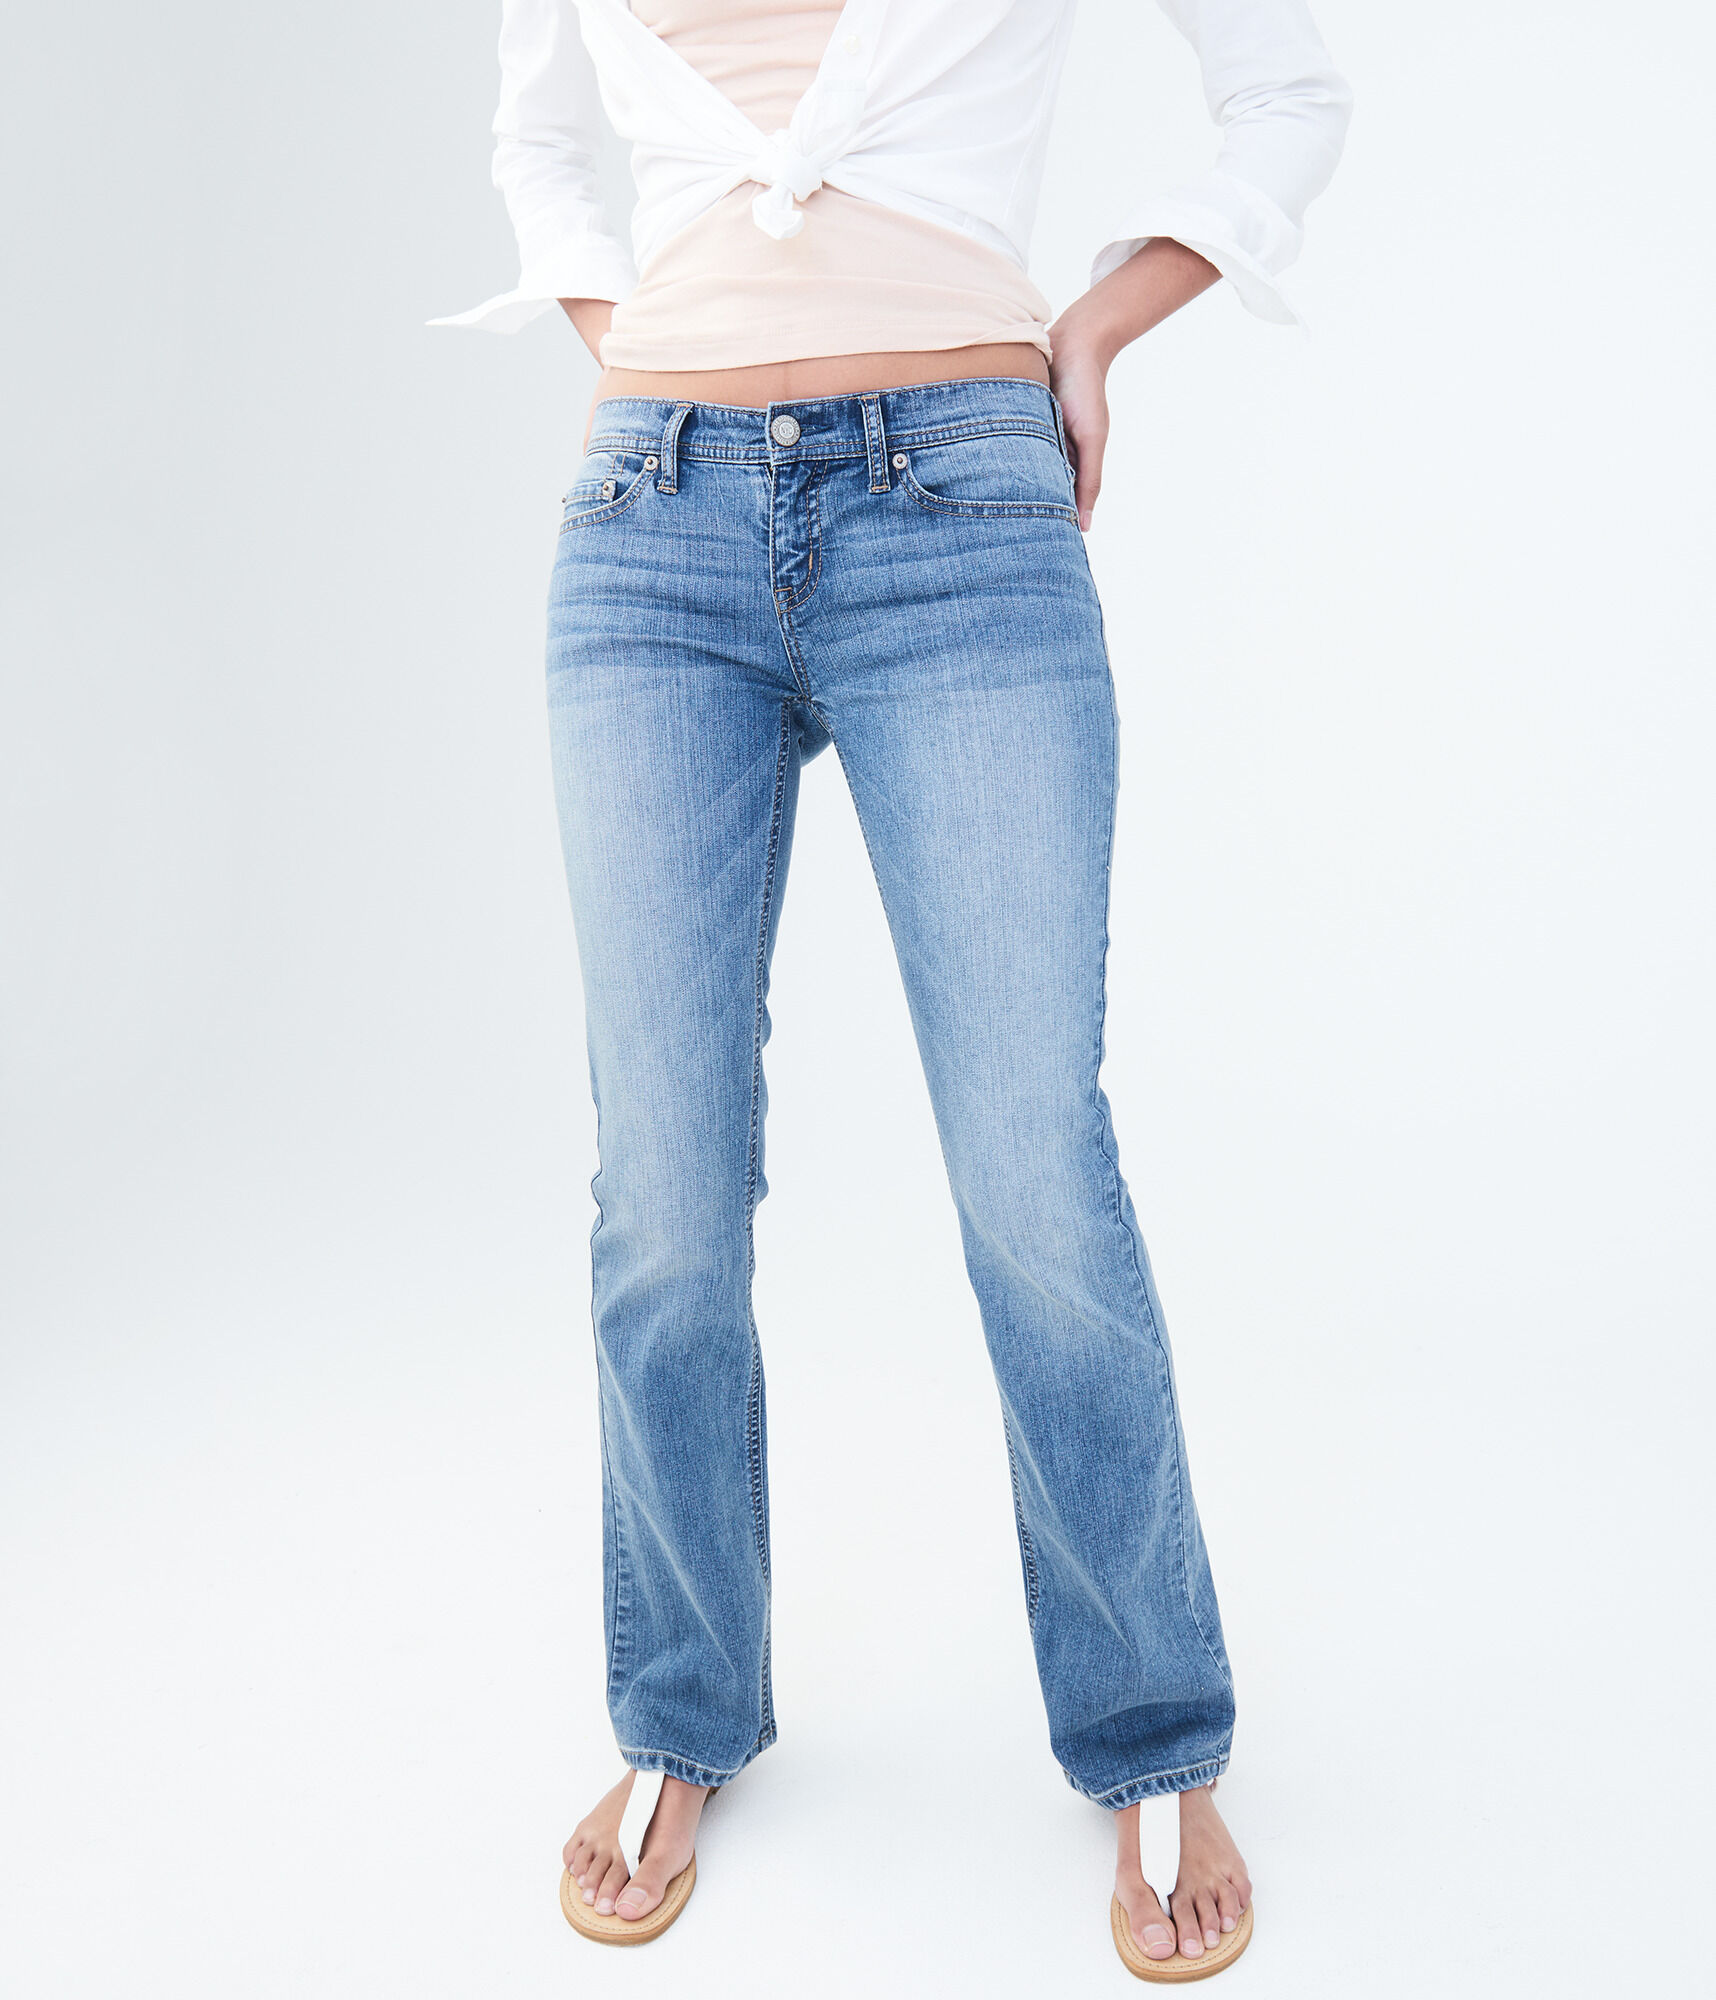 25 Different Types Of Ladies Jeans With Pictures You Should Try Low rise jeans girls photos